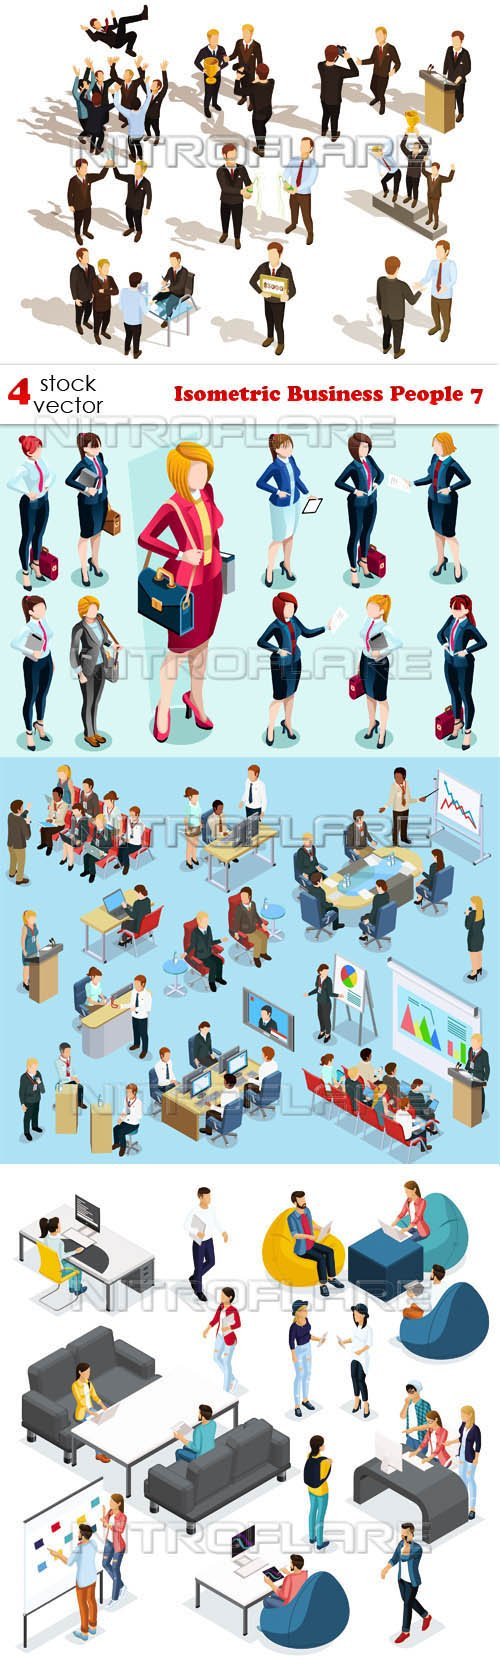 Vectors - Isometric Business People 7